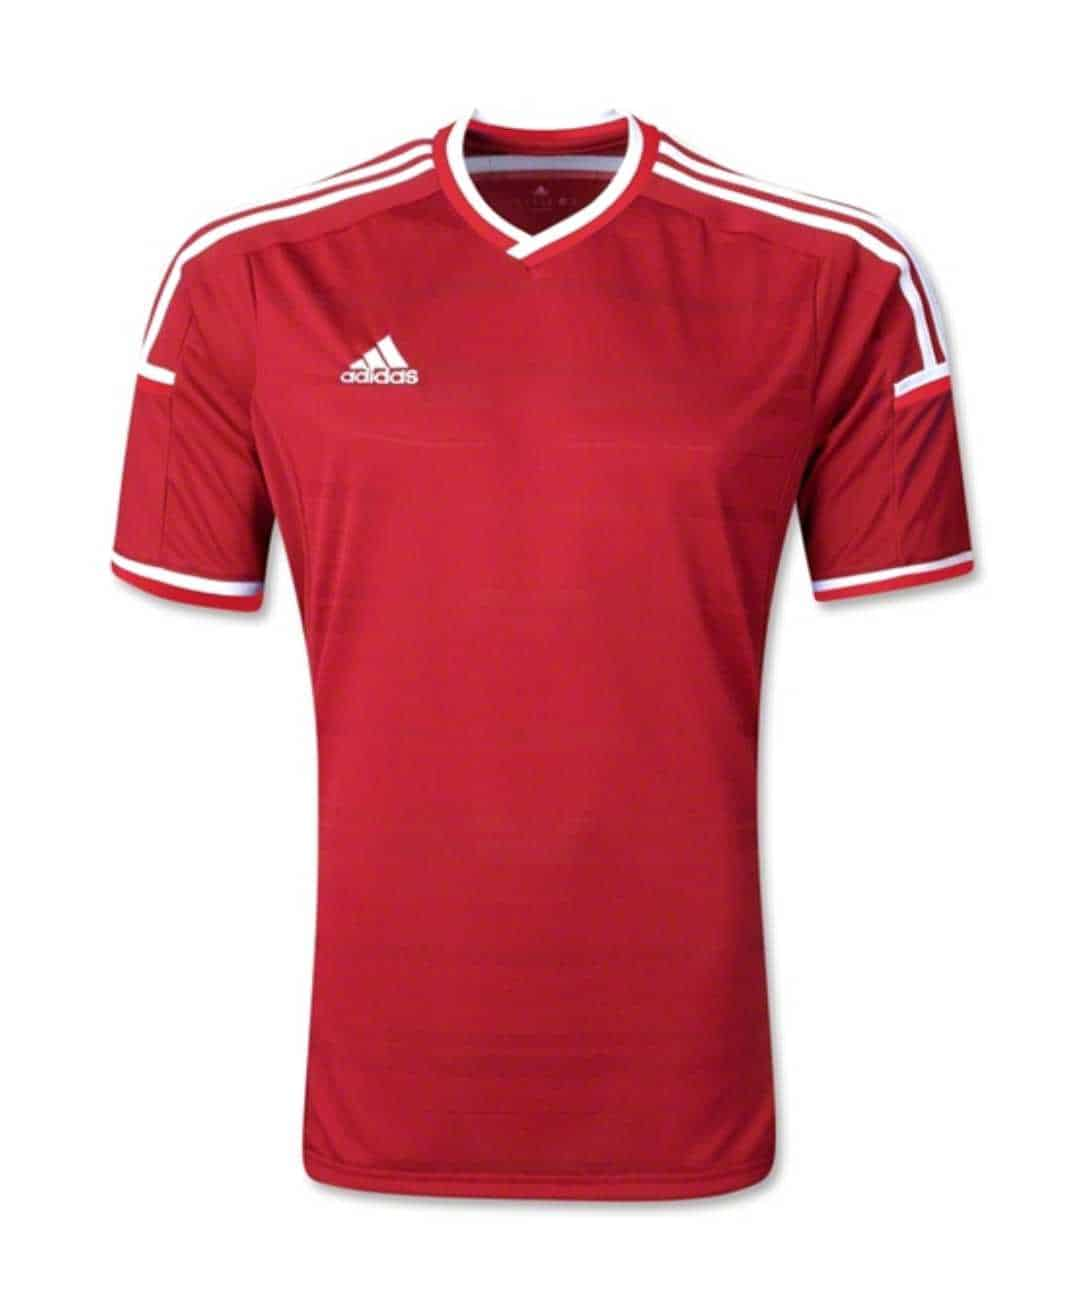 adidas Condivo 14 Soccer Uniform - TheTeamFactory.com - photo#12